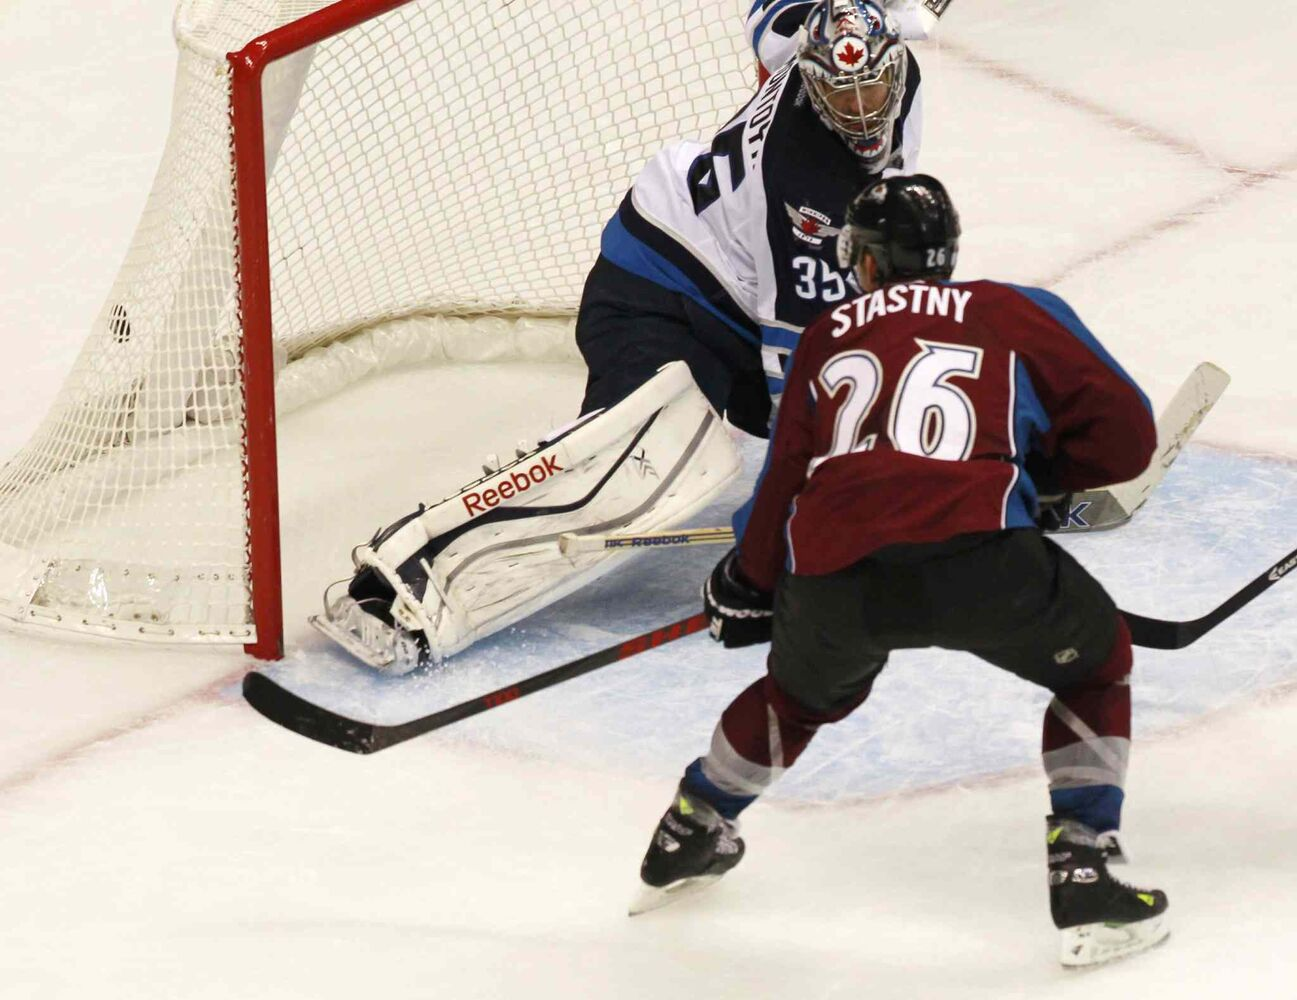 Colorado Avalanche center Paul Stastny puts the puck in the net for the go-ahead goal in the third period.